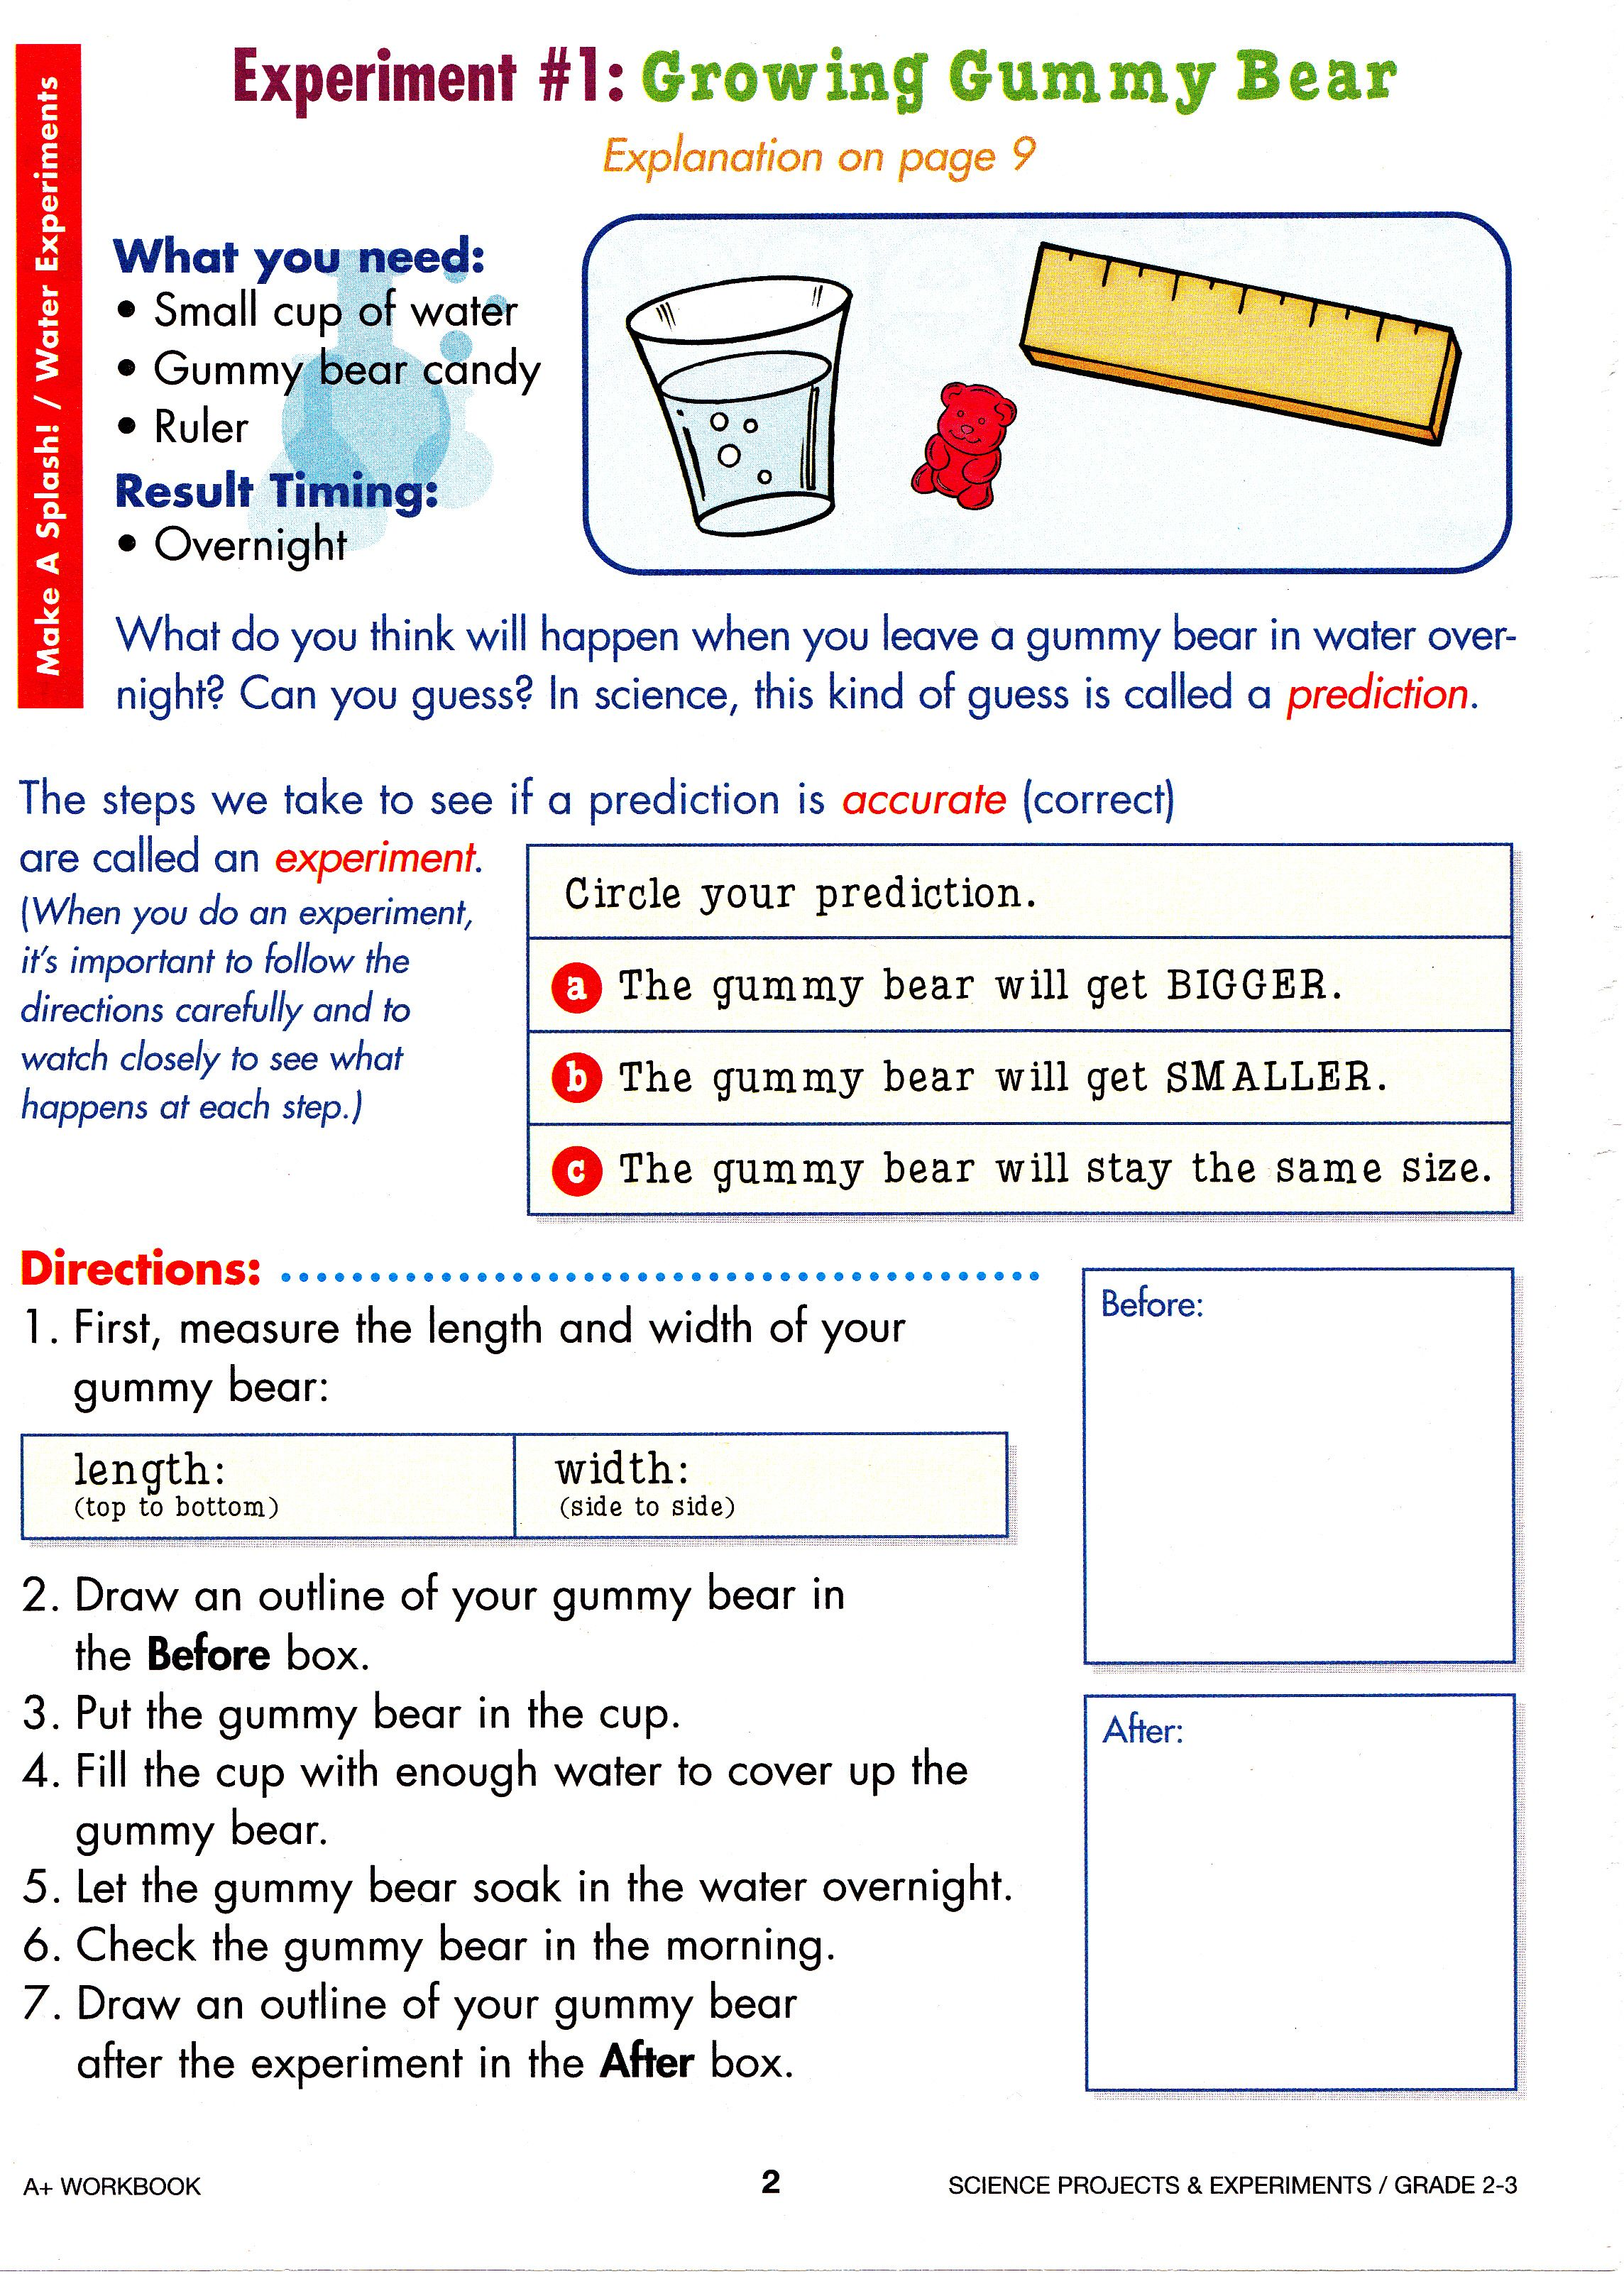 hight resolution of Pin by Sarah Reeder on Let's Talk About Science   Science worksheets